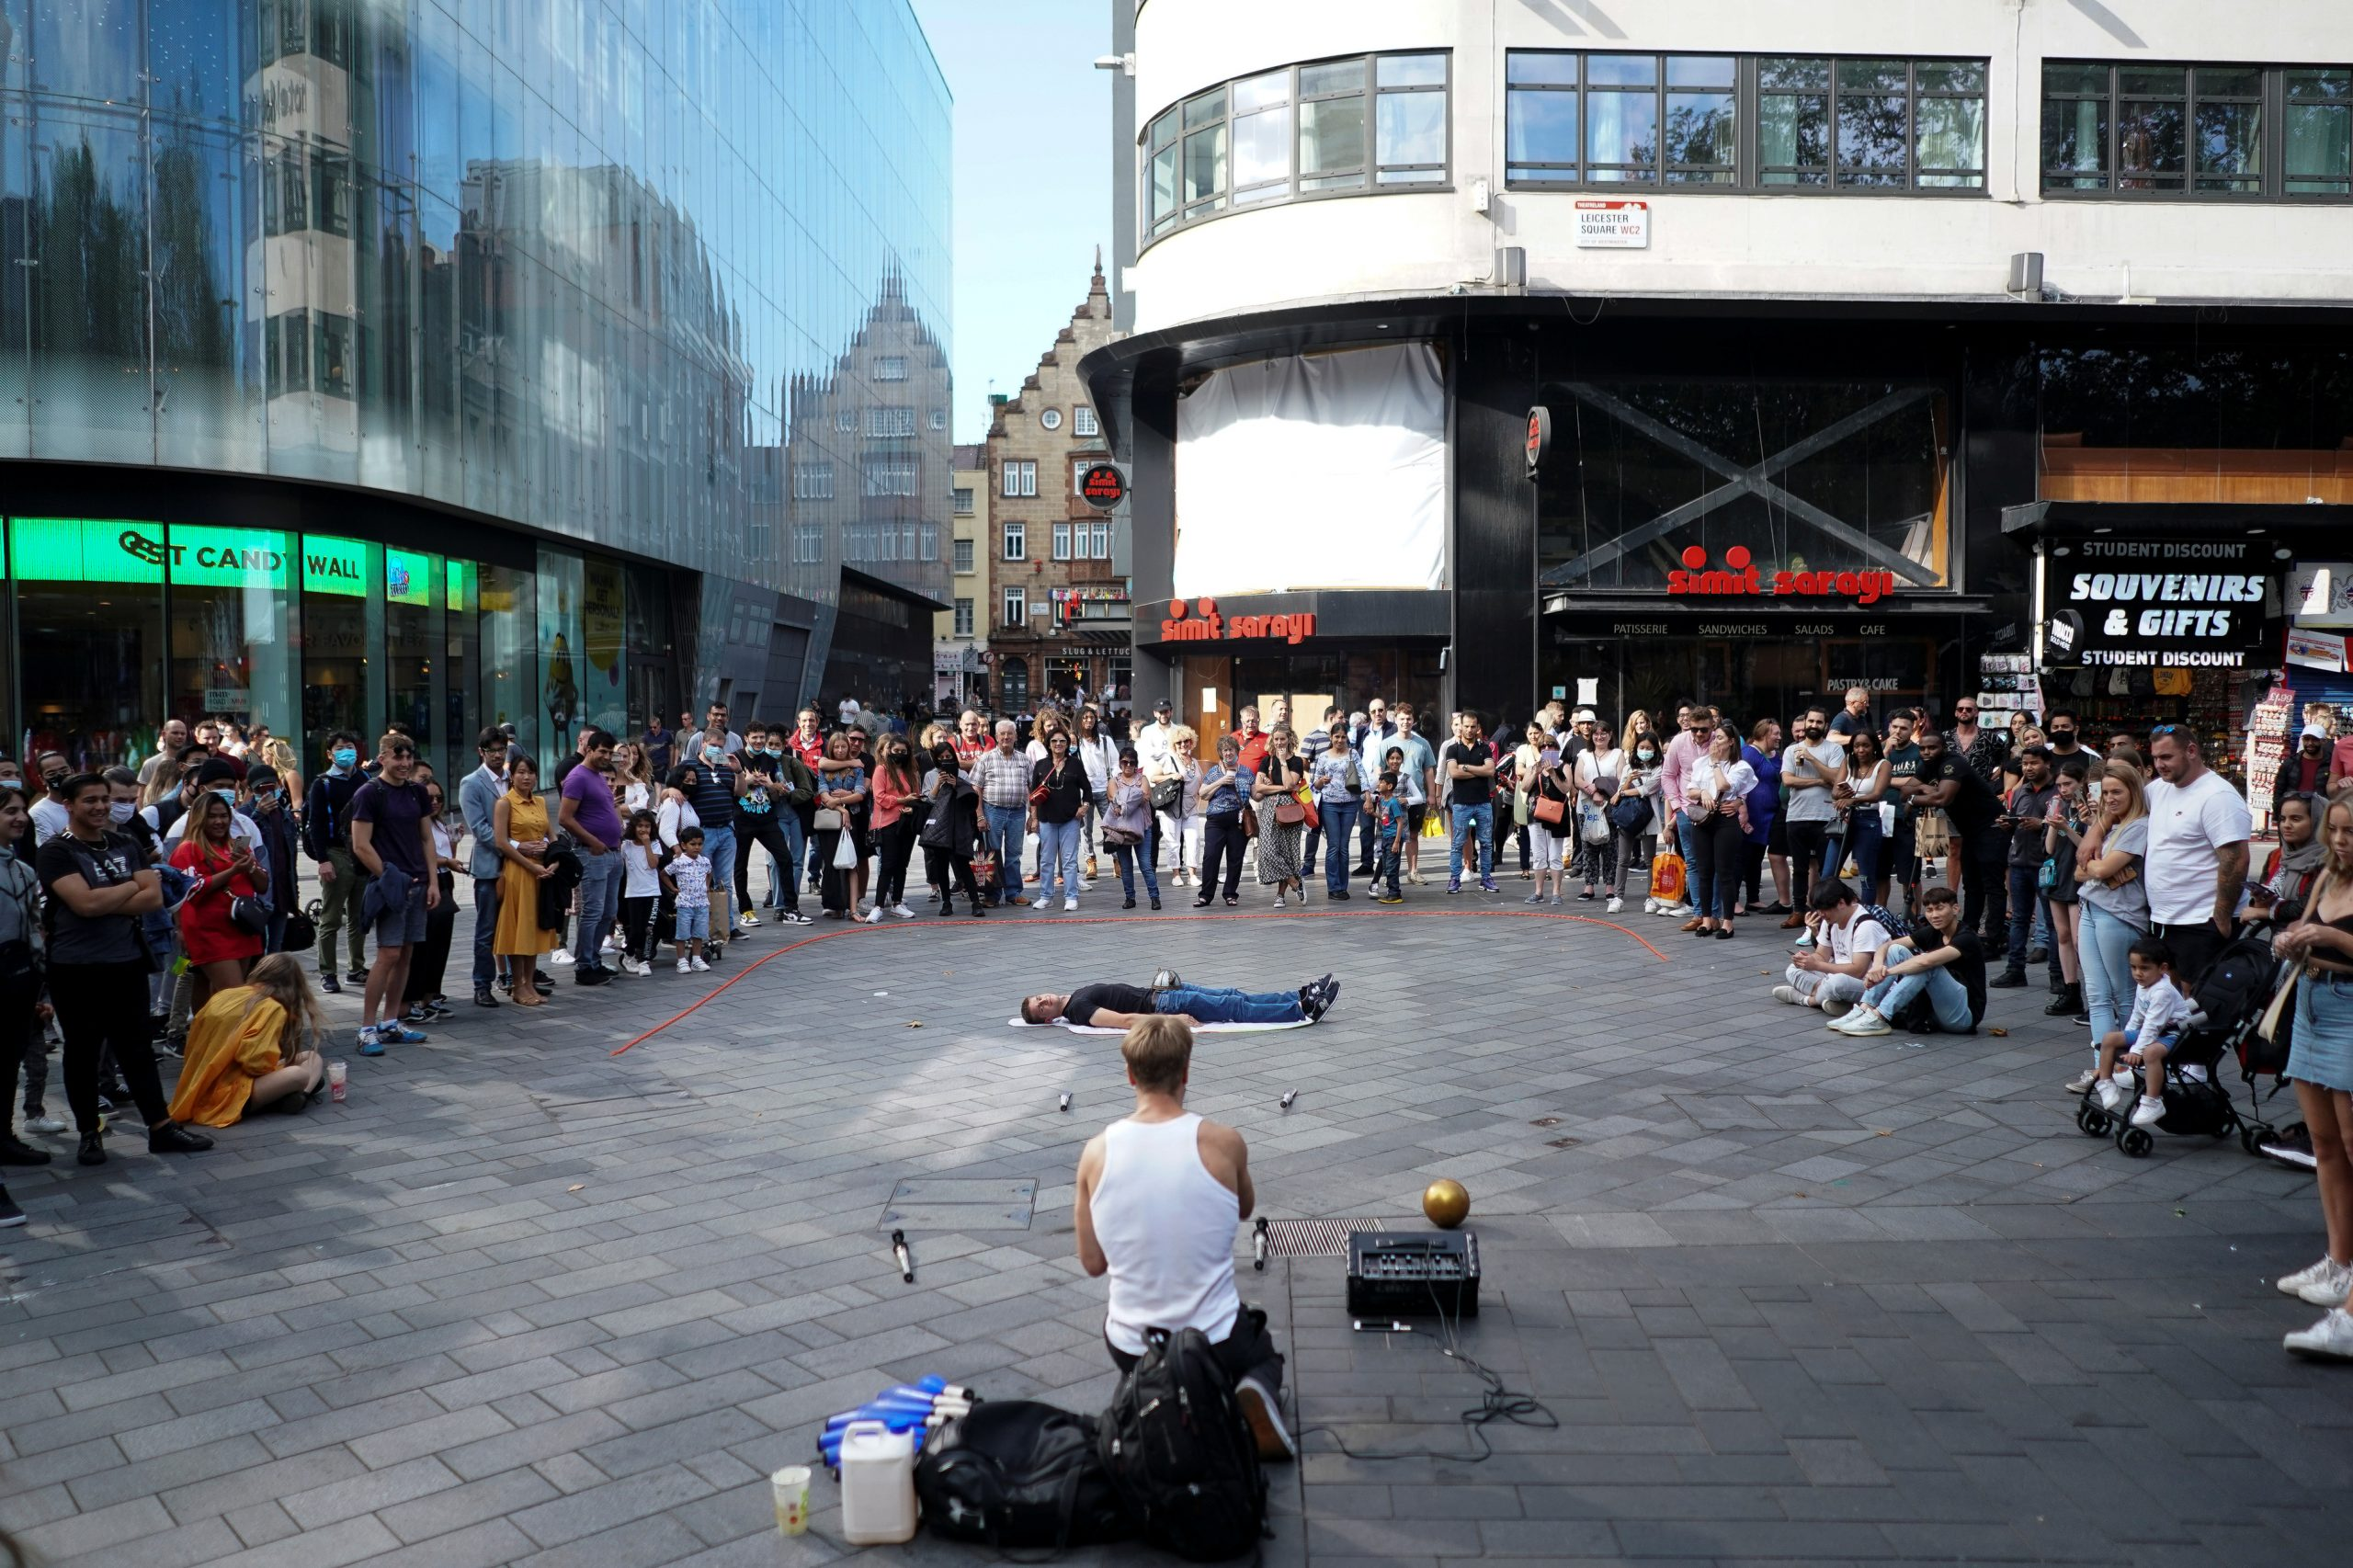 People watch a street performance in Leicester Square, amid fears of a second coronavirus wave, on September 20, 2020. (REUTERS/Henry Nicholls)